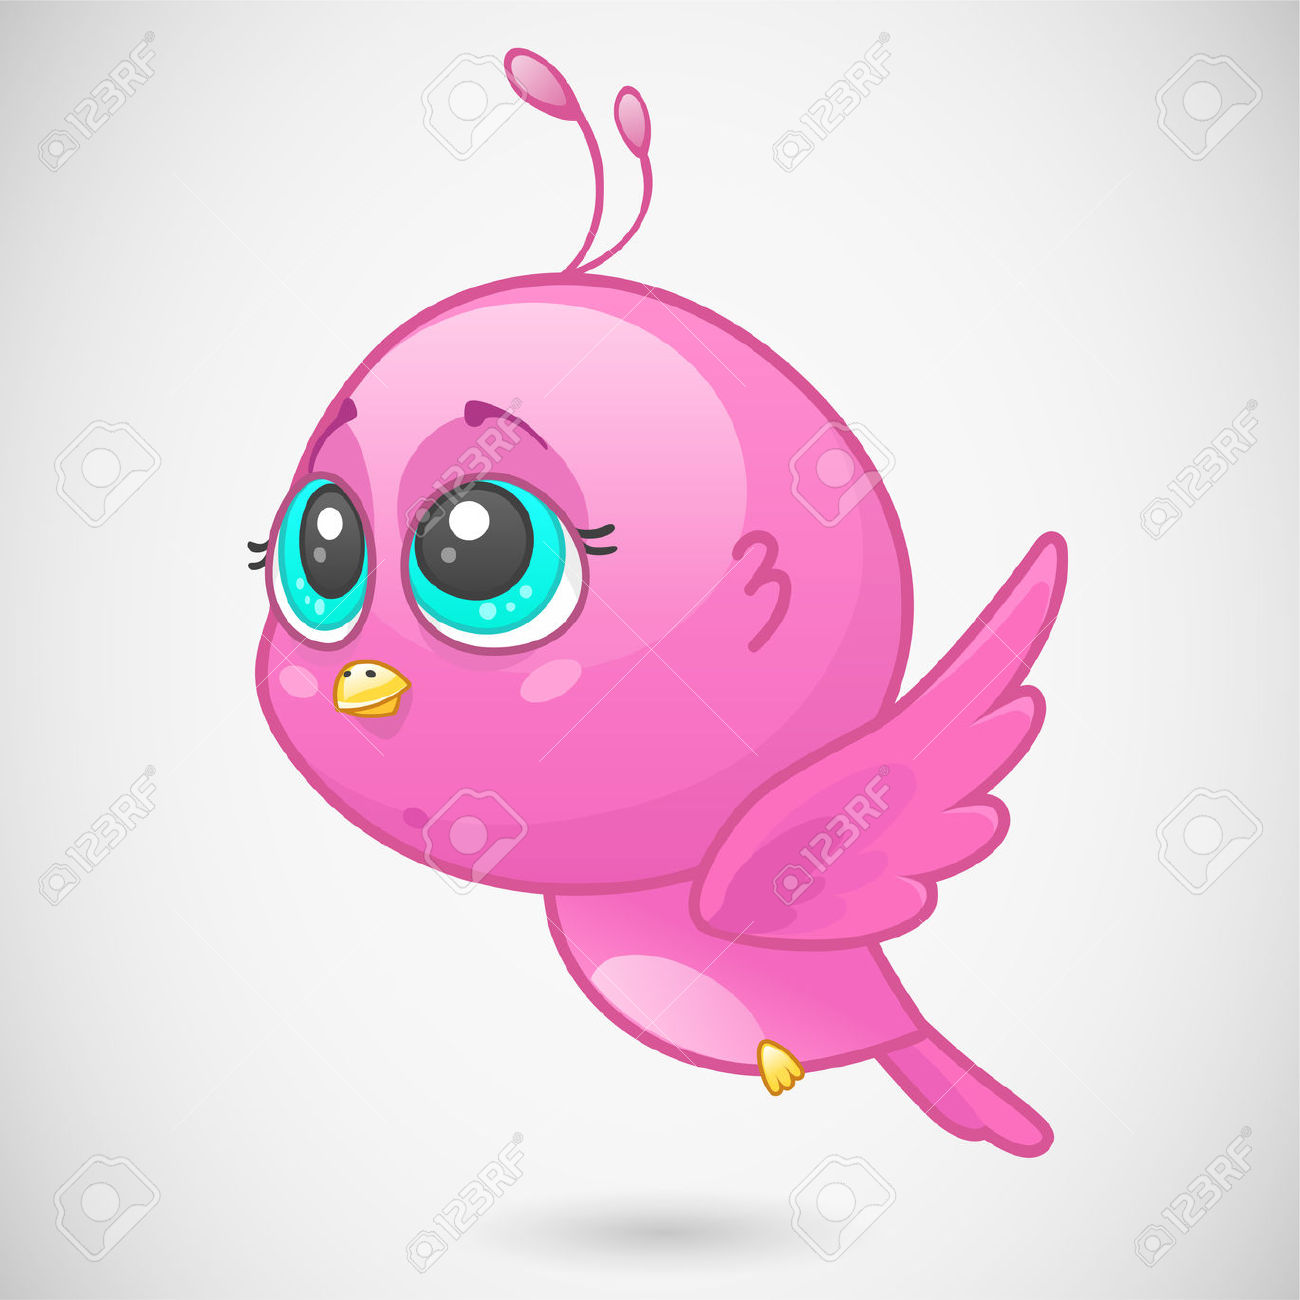 Cute Pink Bird Royalty Free Cliparts, Vectors, And Stock.